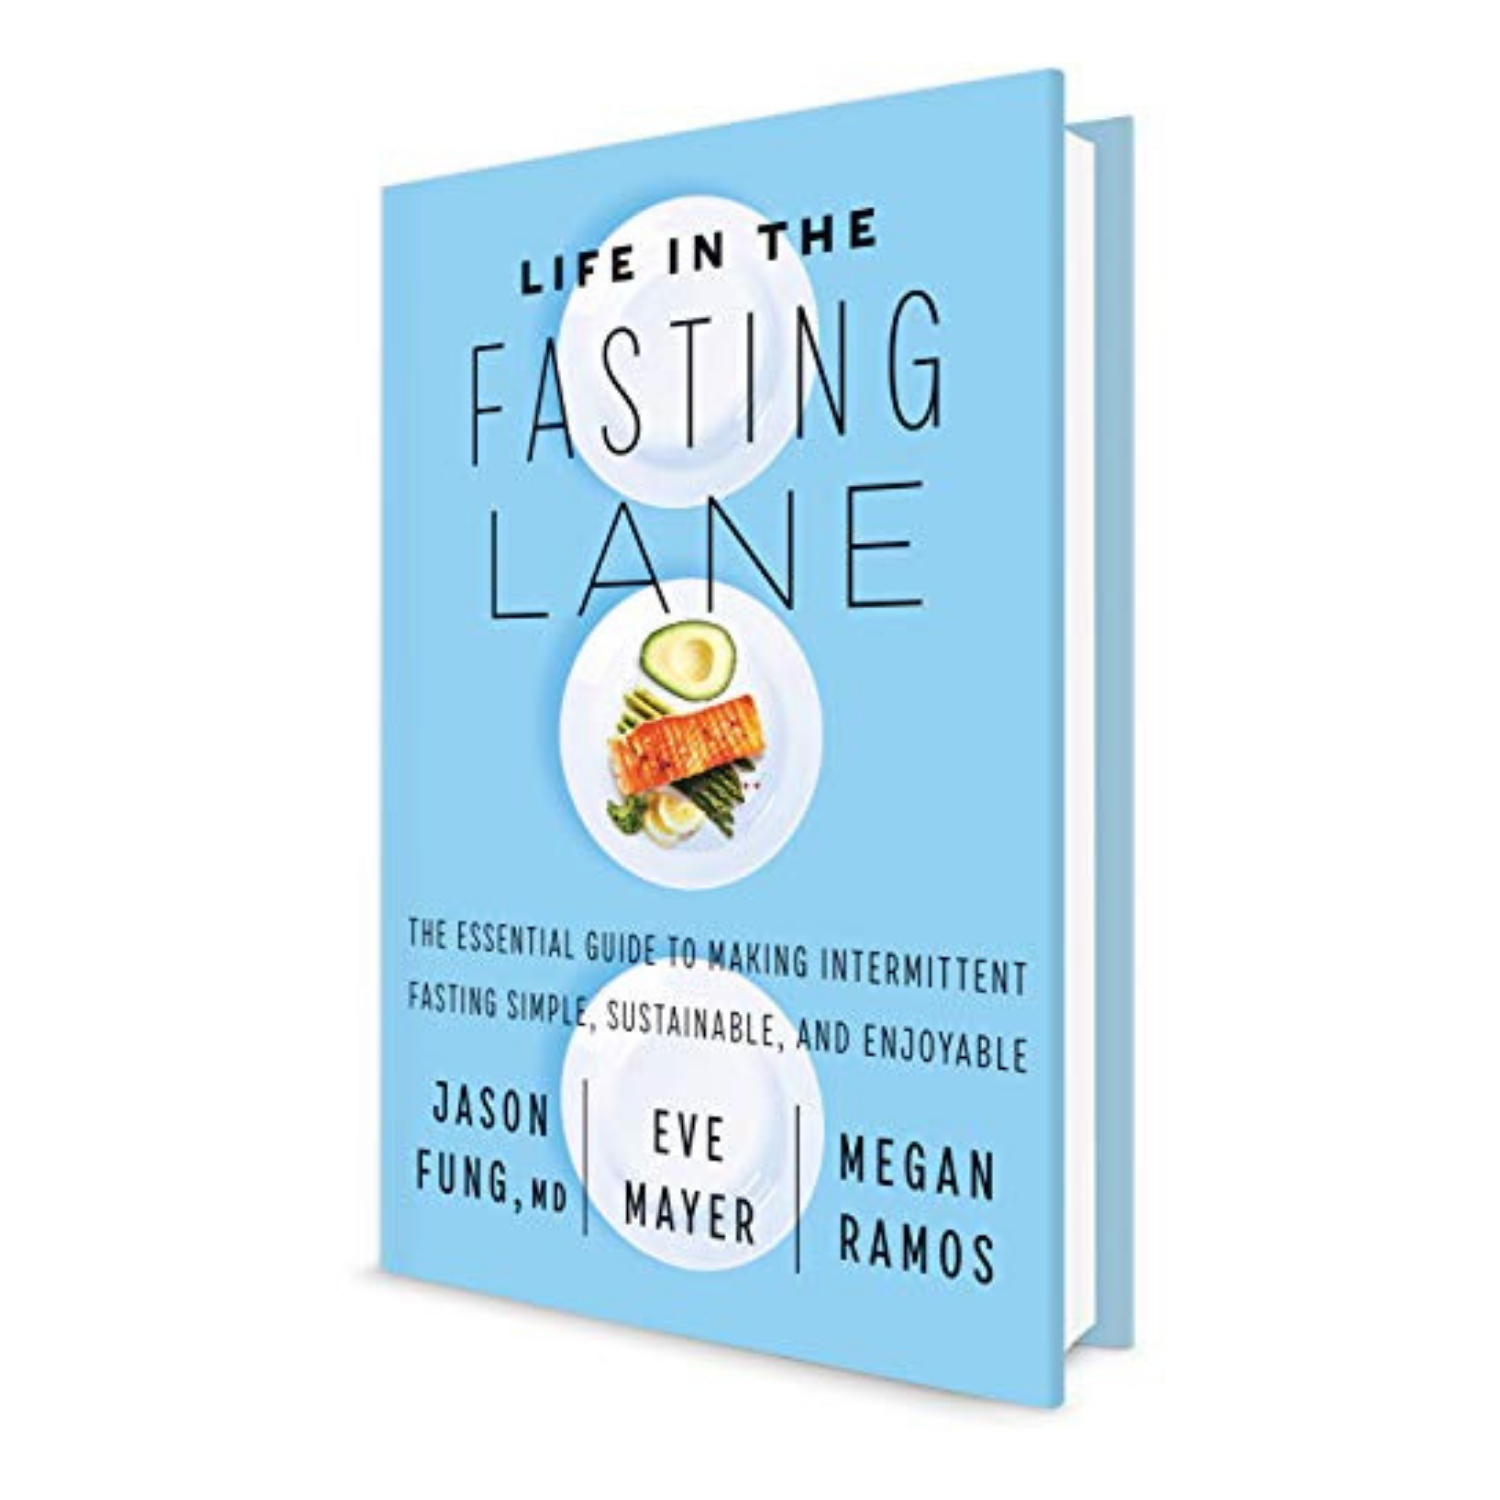 Life in the fasting lane (Dr. Jason Fung)